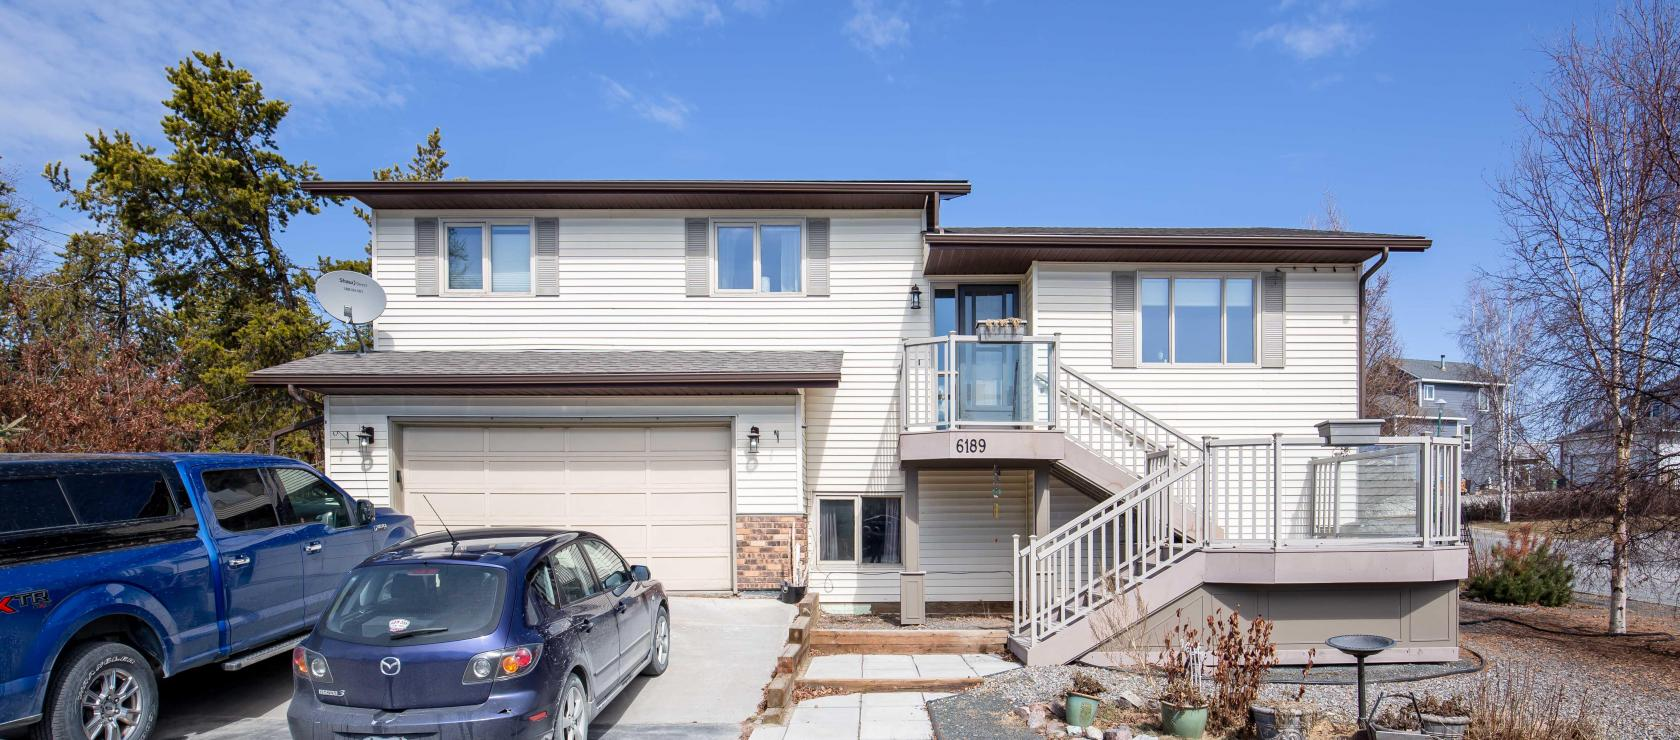 14 Tees Court, Frame Lake South, Yellowknife 2